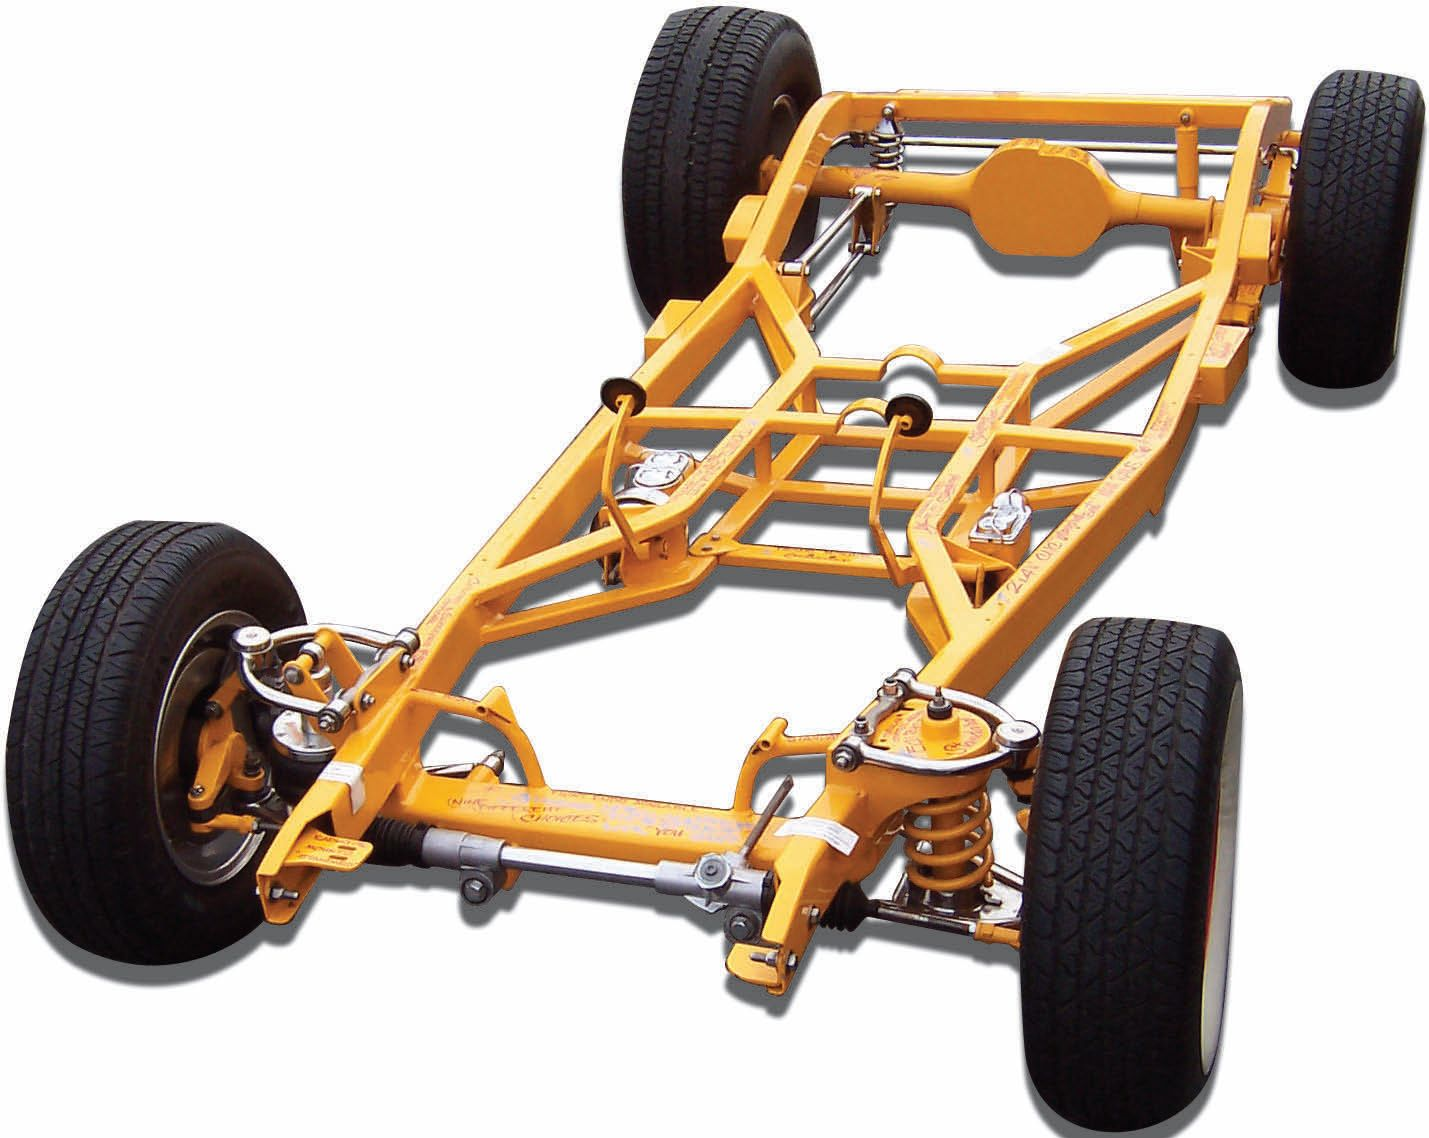 simple chassis and suspension plans - Google Search | Engine ...